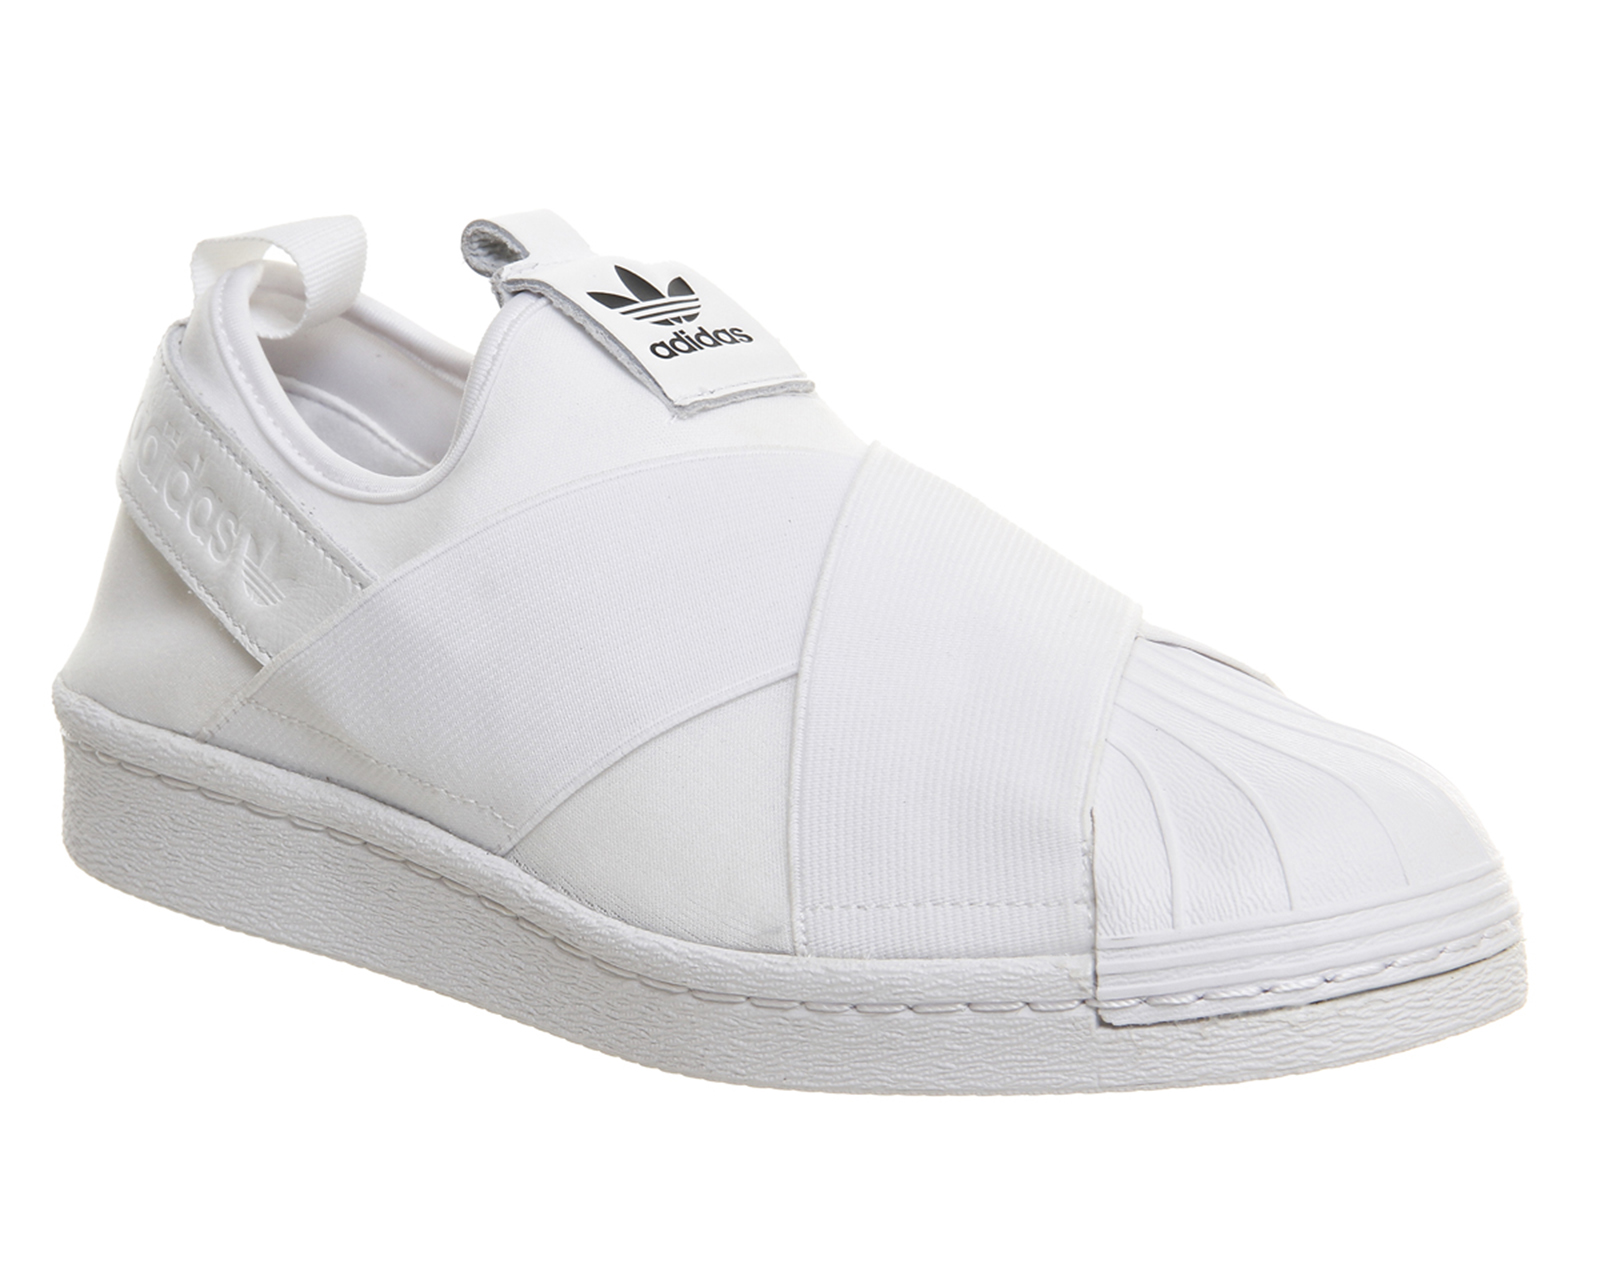 Womens-Adidas-Superstar-Slip-On-WHITE-MONO-Trainers-